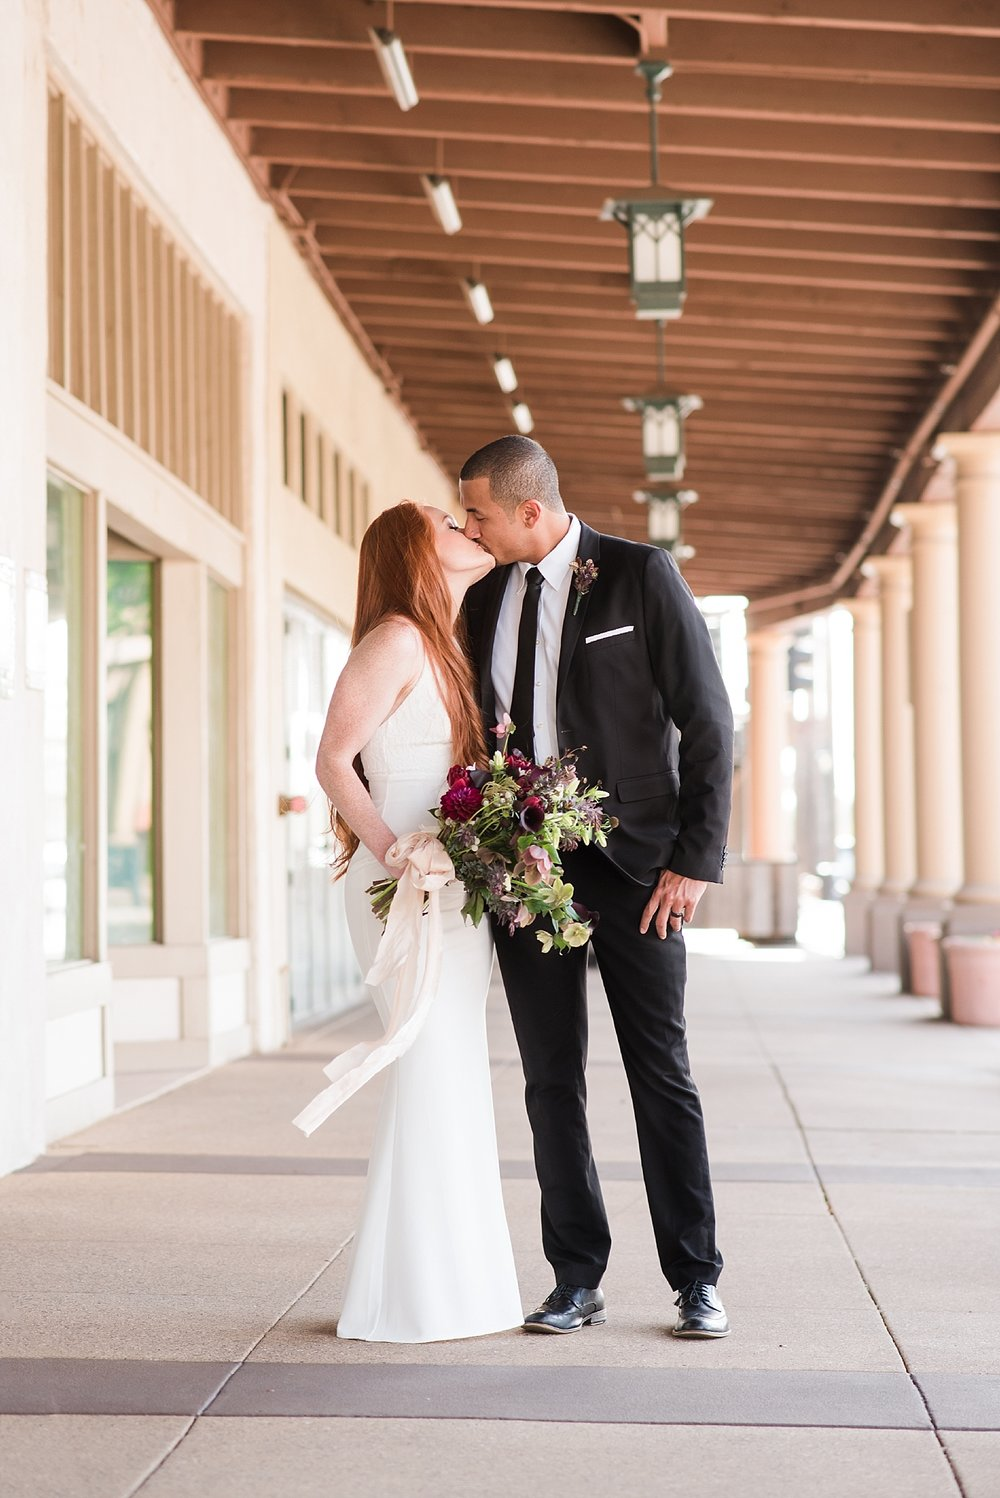 Soho63 wedding shoot in downtown Chandler. Wedding photos taken by Jade Min Photography.